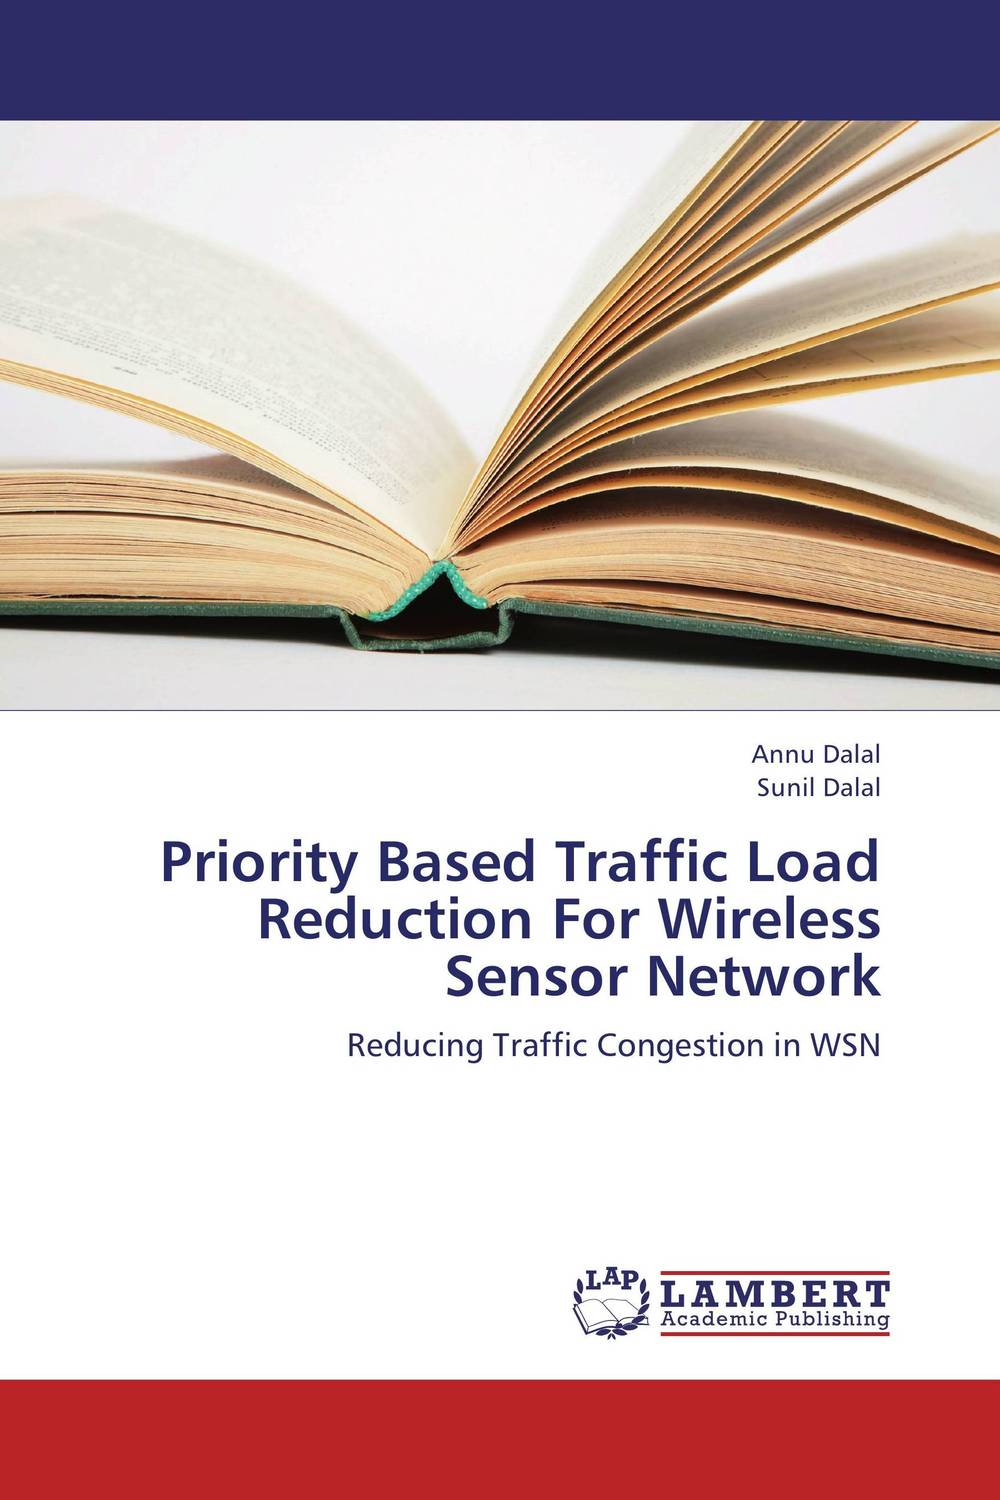 Priority Based Traffic Load Reduction For Wireless Sensor Network intrusion detection system architecture in wireless sensor network